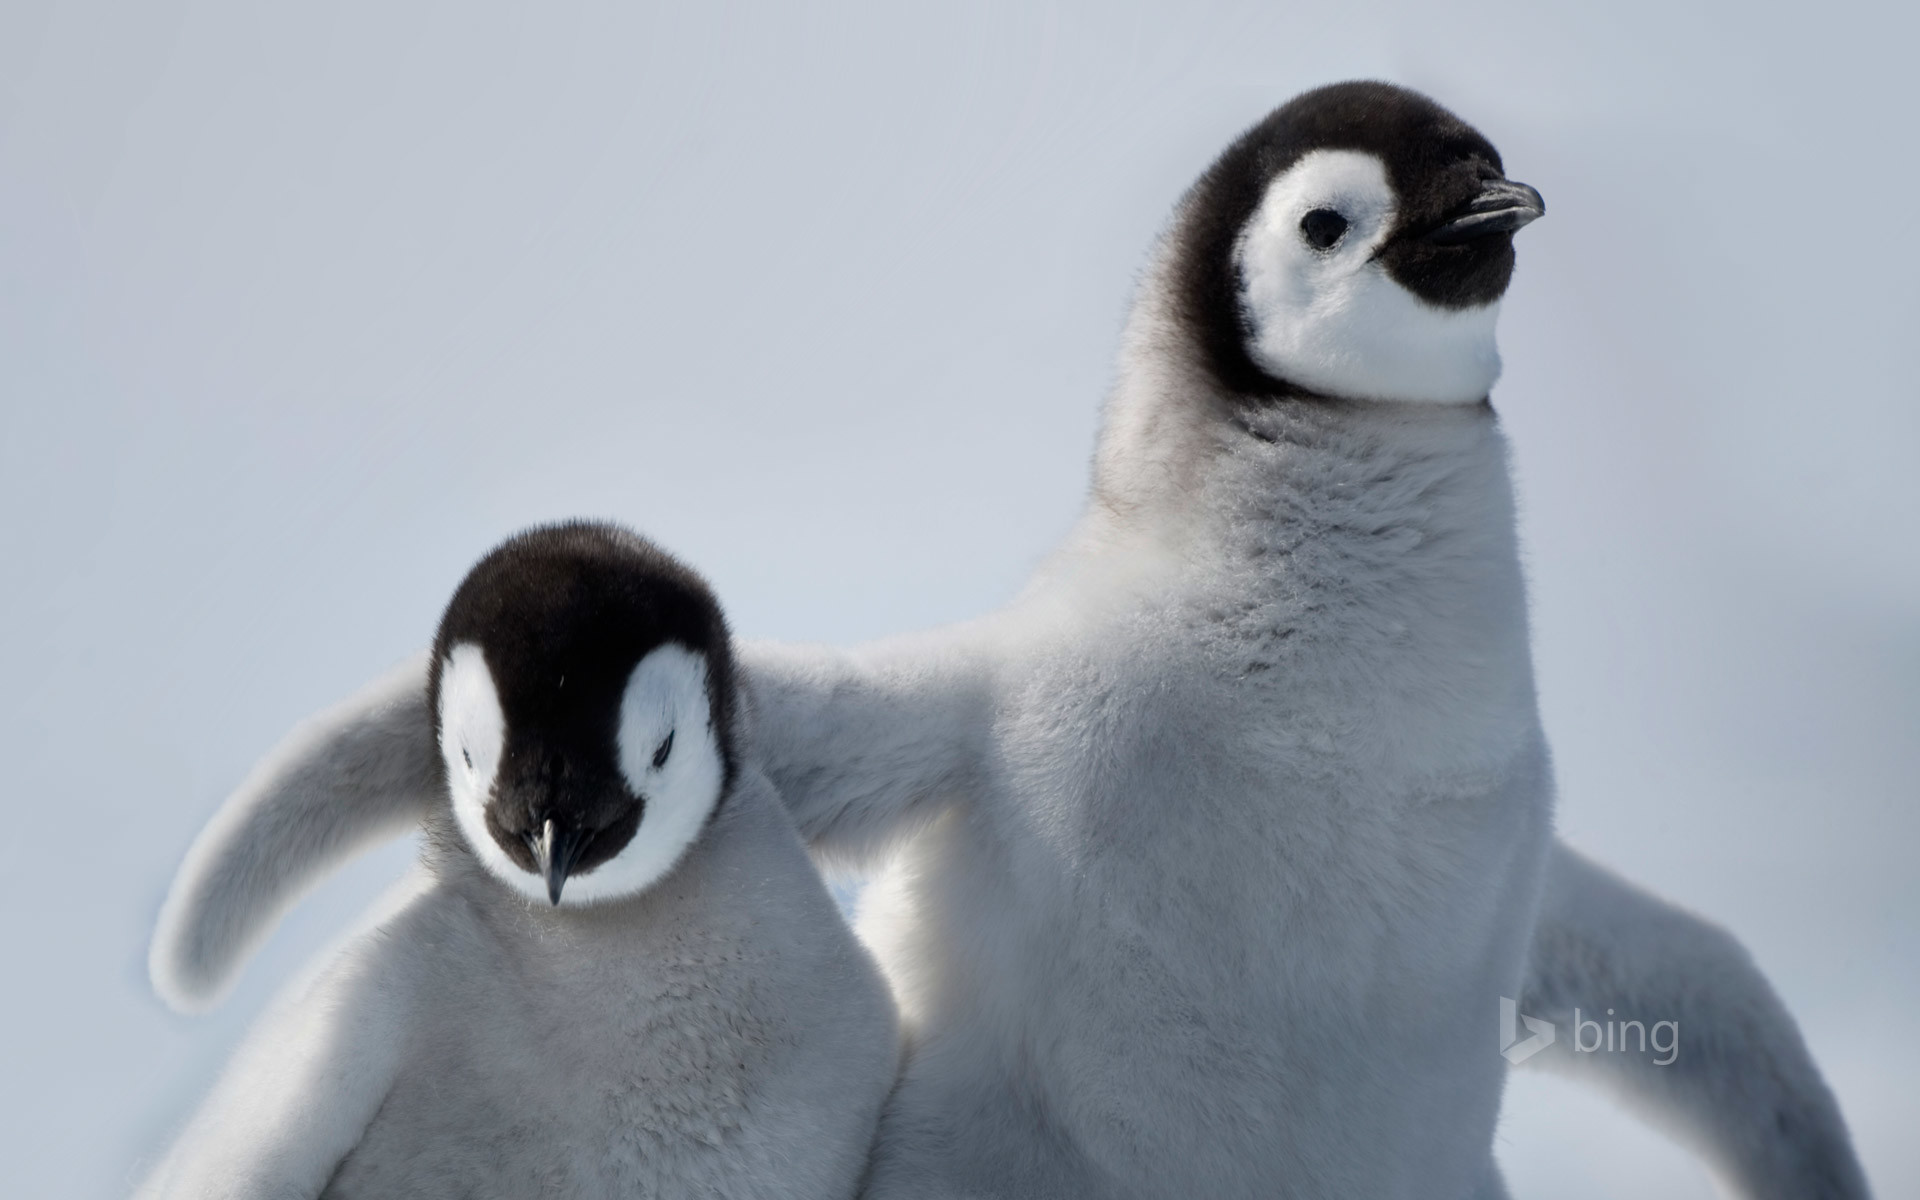 Penguin HD Wallpapers Backgrounds Wallpaper   HD Wallpapers   Pinterest    Wallpaper, Wallpaper backgrounds and Painting pictures